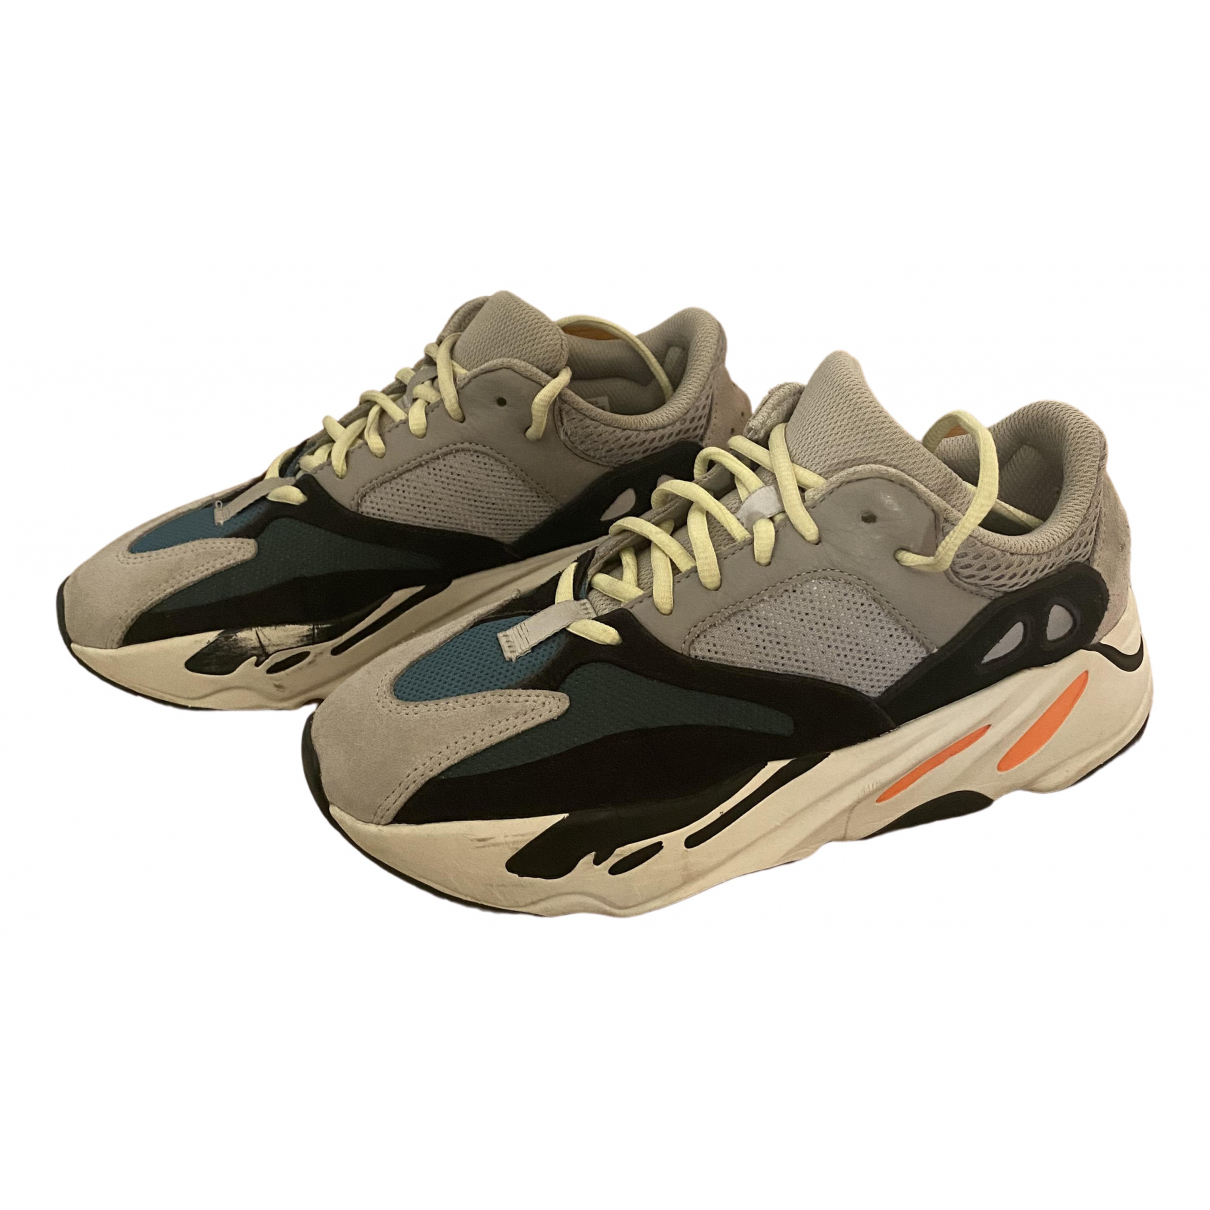 Yeezy X Adidas Boost 700 V1  Orange Rubber Trainers for Men 7 UK